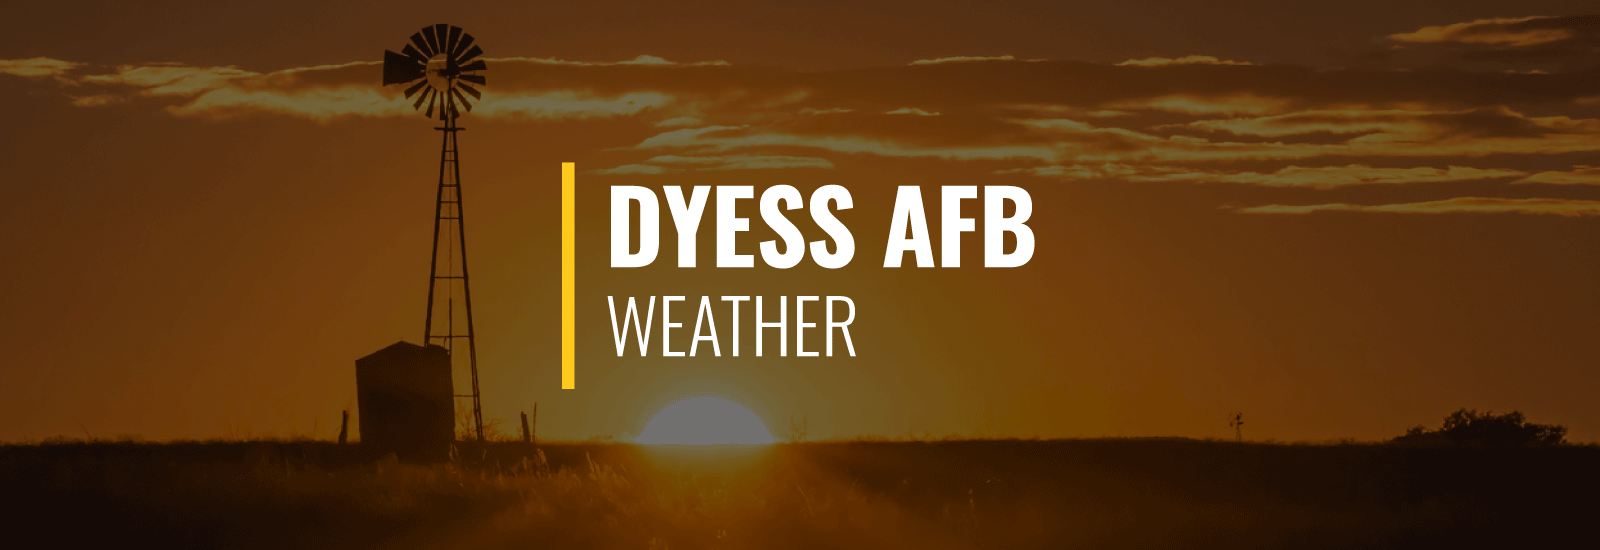 Dyess AFB Weather